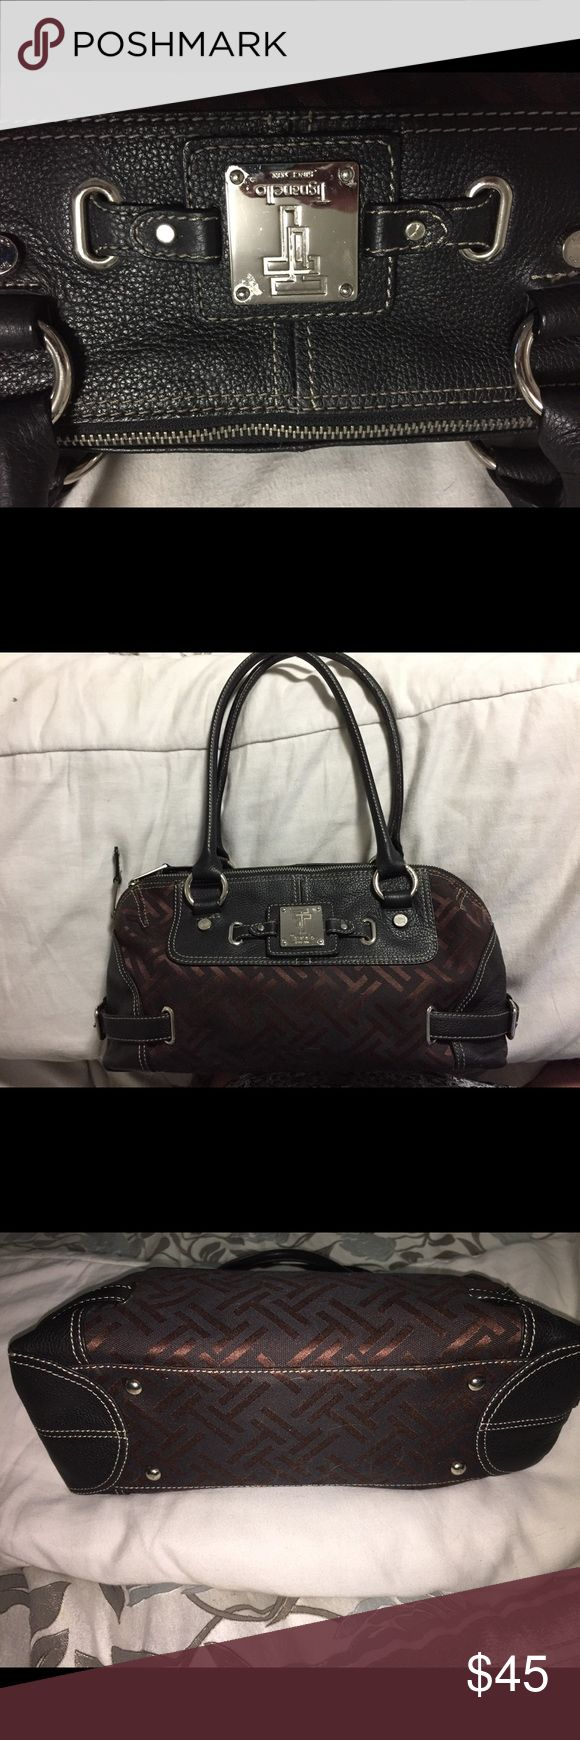 Tignanello handbag 👜 Authentic tignanello handbag 👜 really chic chevron pattern with leather trim! Zippers and pockets galore💋💋💋Excellent condition, this bag goes with everything ❤️❤️❤️👜👜👜👜 Tignanello Bags Shoulder Bags